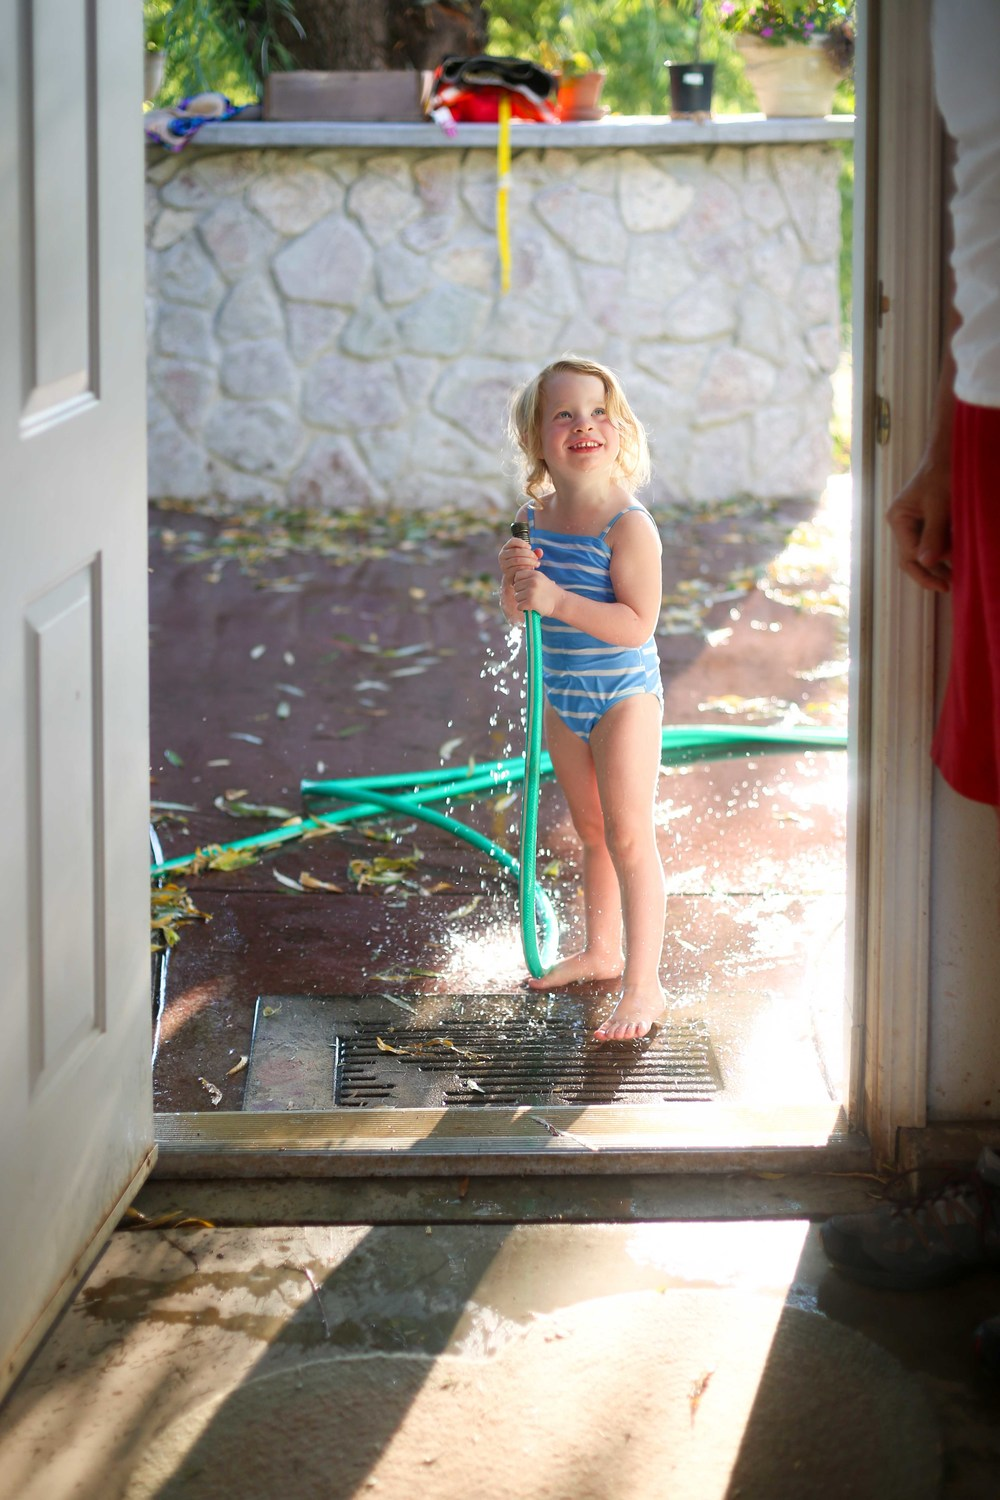 Water and Hose Fun-42.jpg